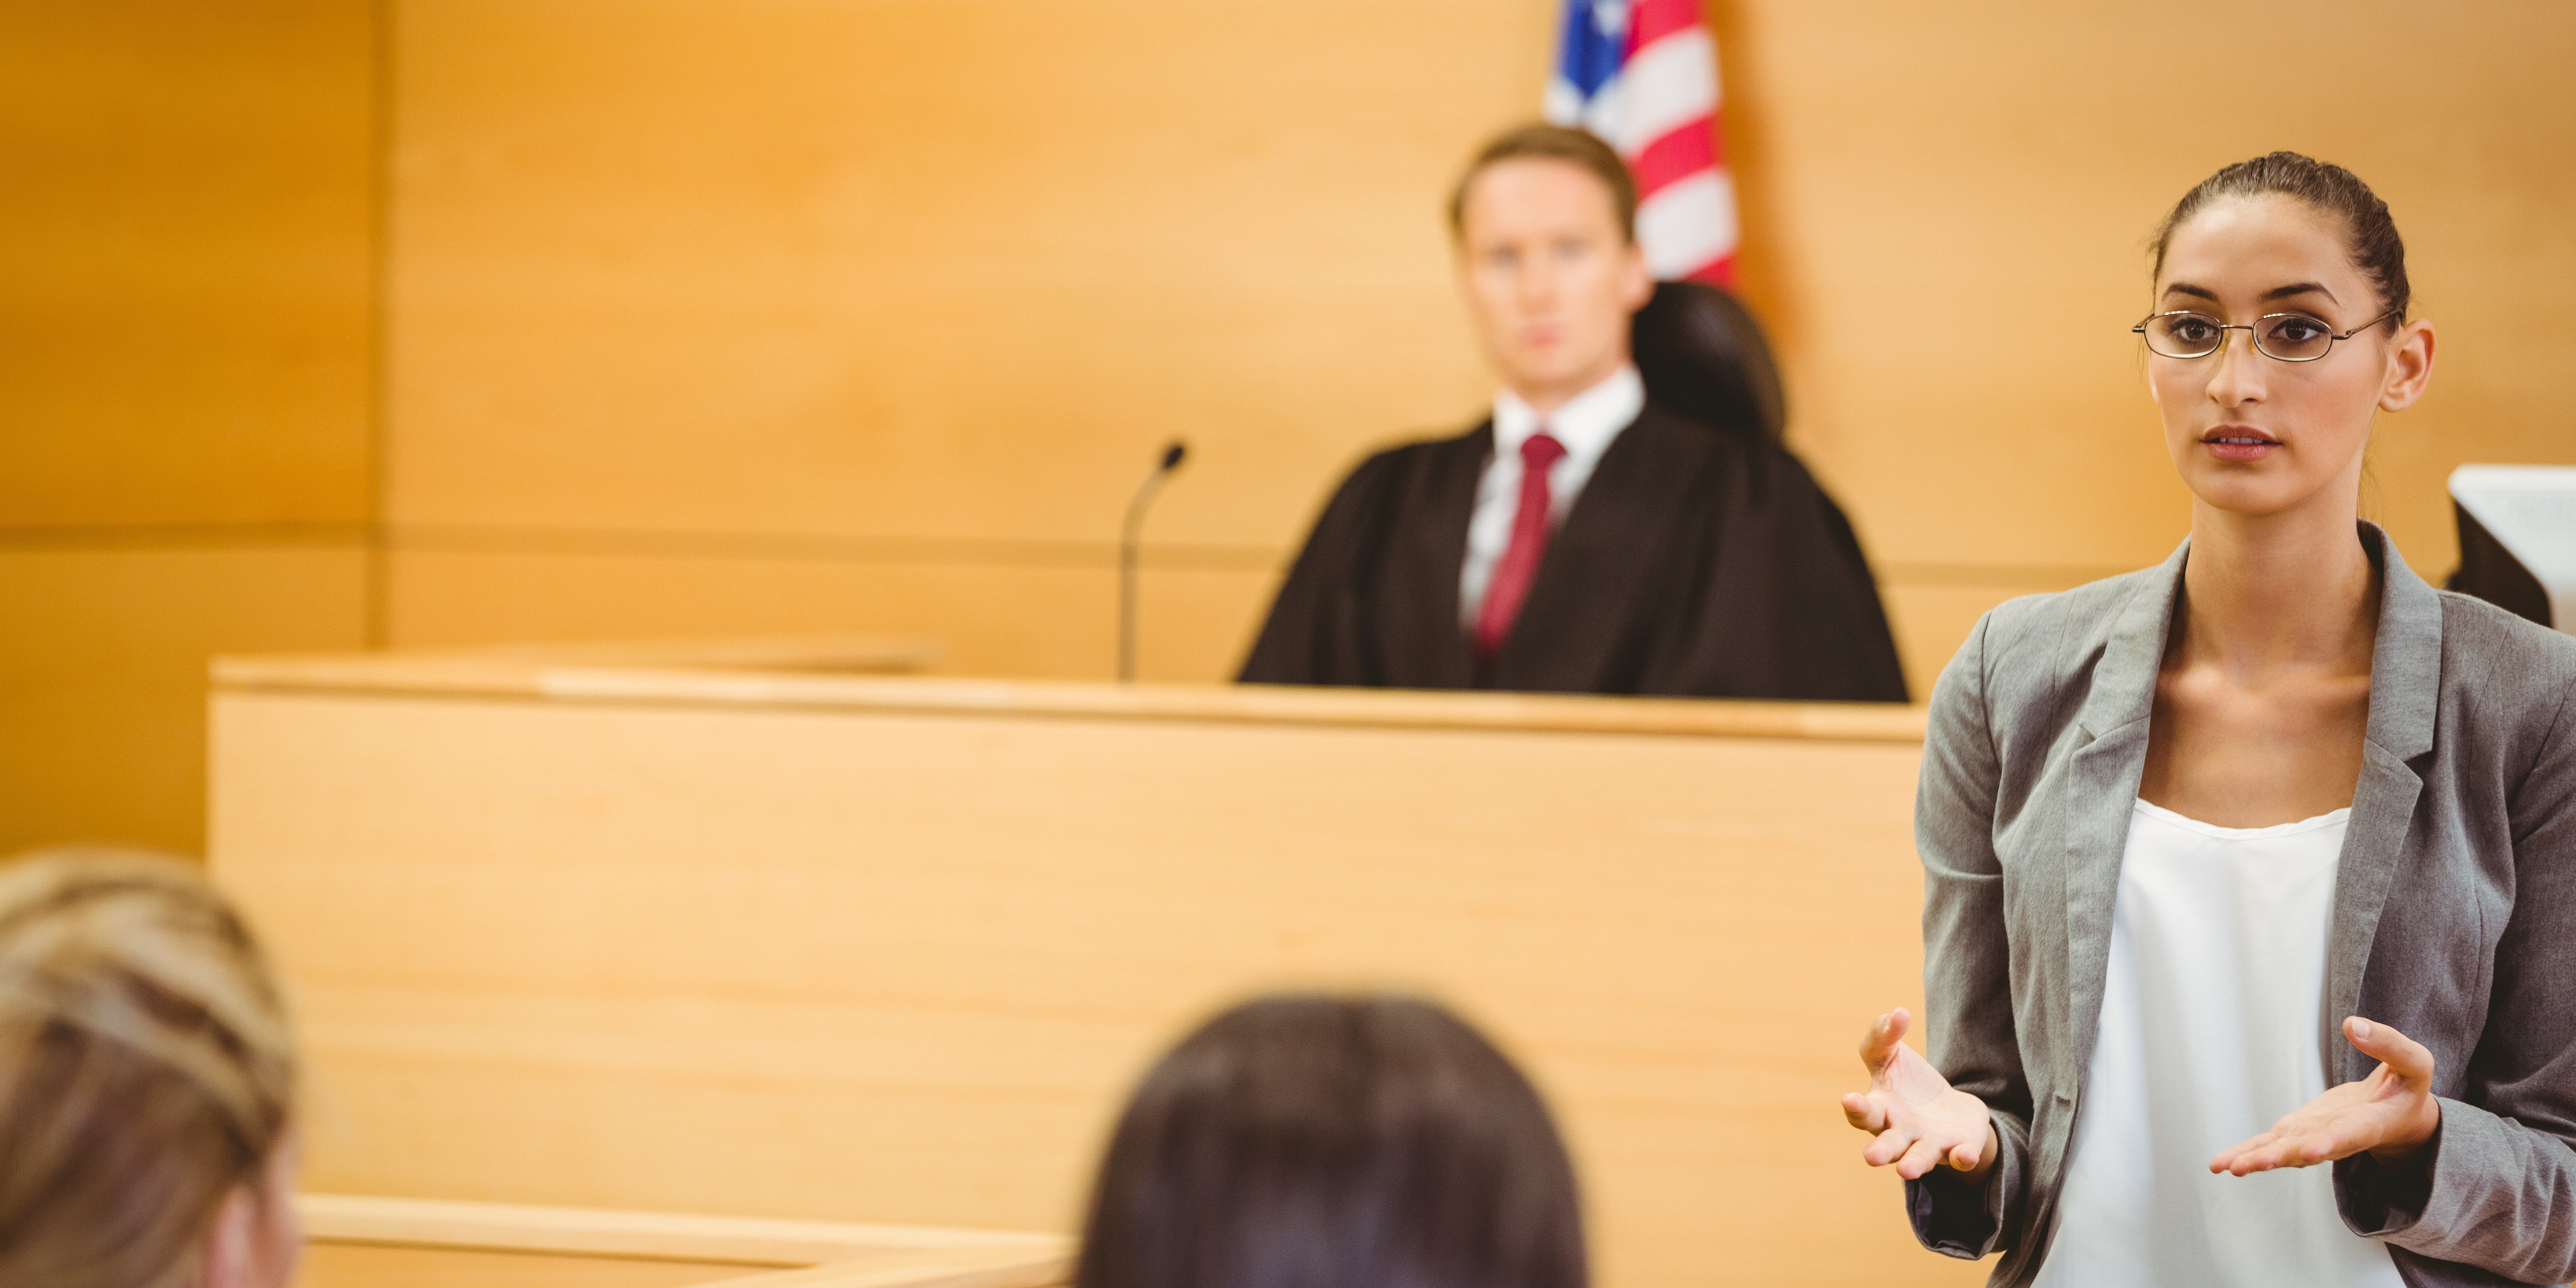 5 Tips on How to Present Video Evidence in Court